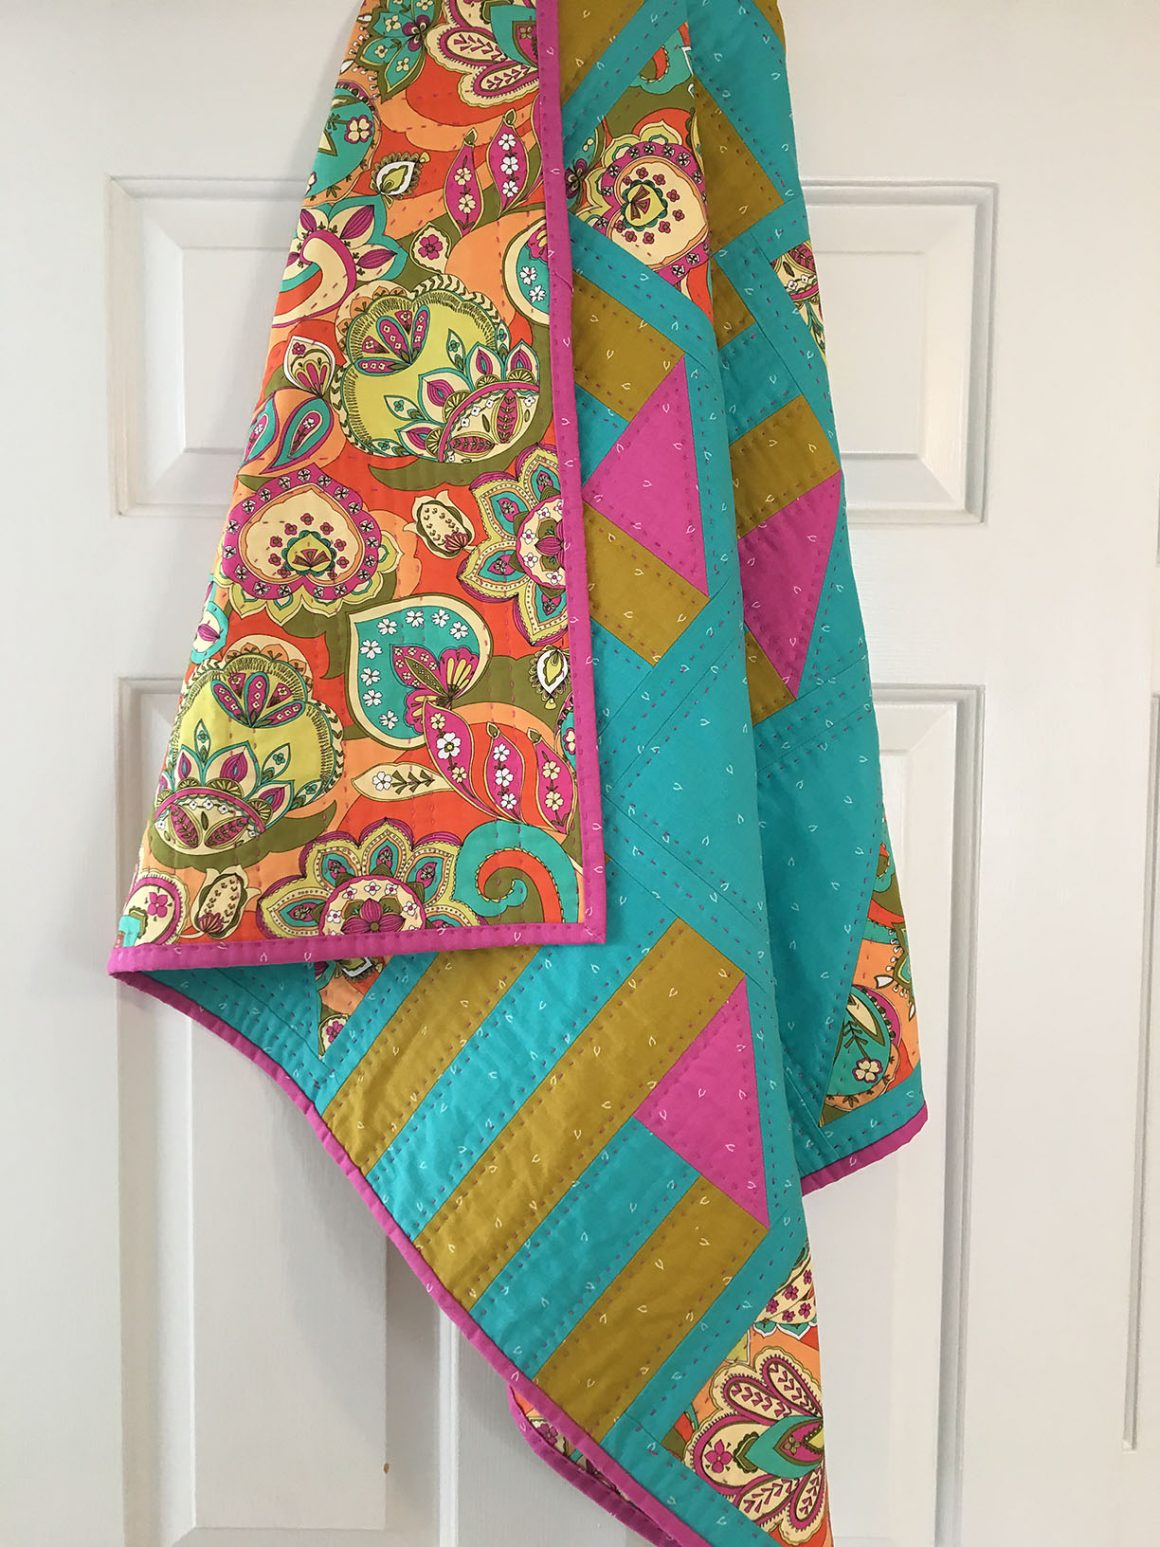 Half Pint Quilt - made by HollyGroveThreads